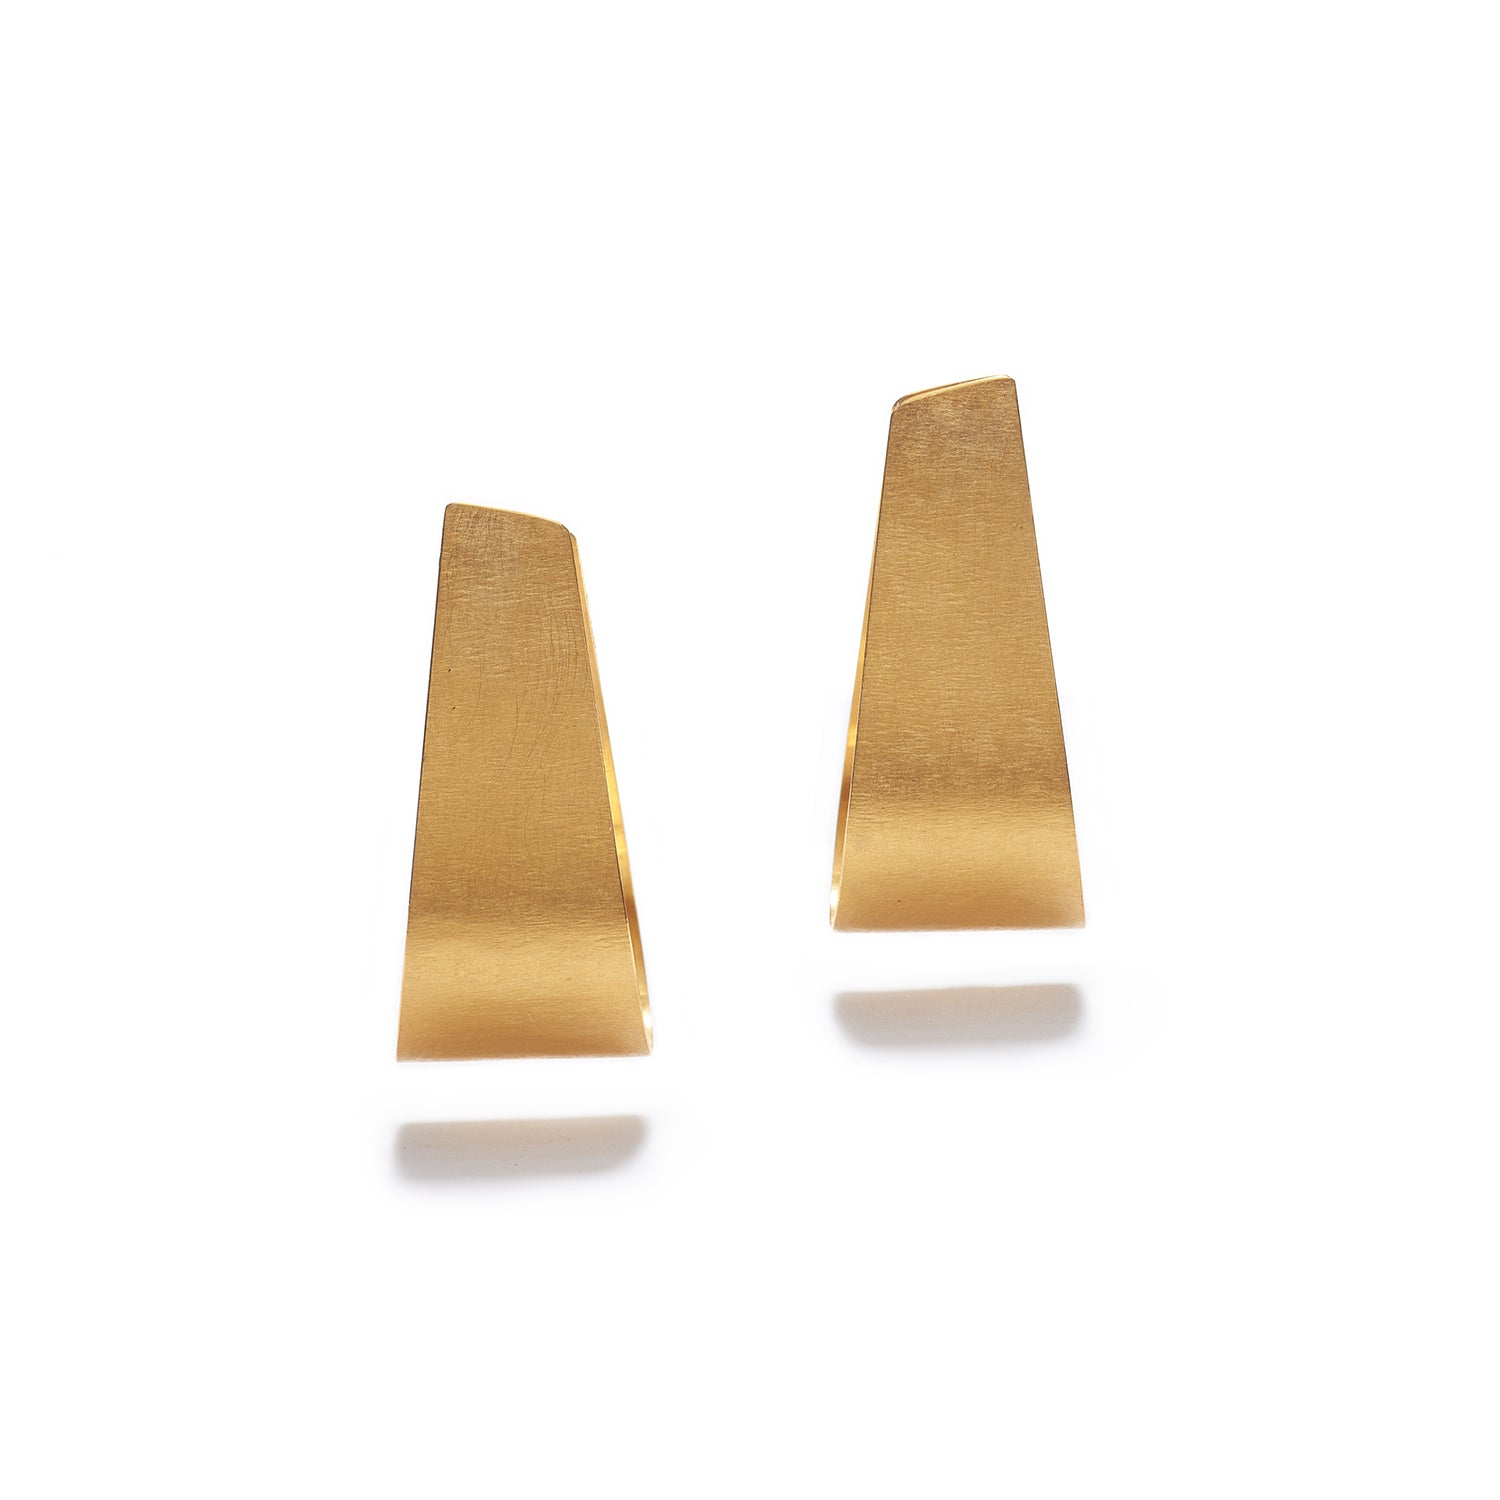 Medium Golden Clamp Earrings